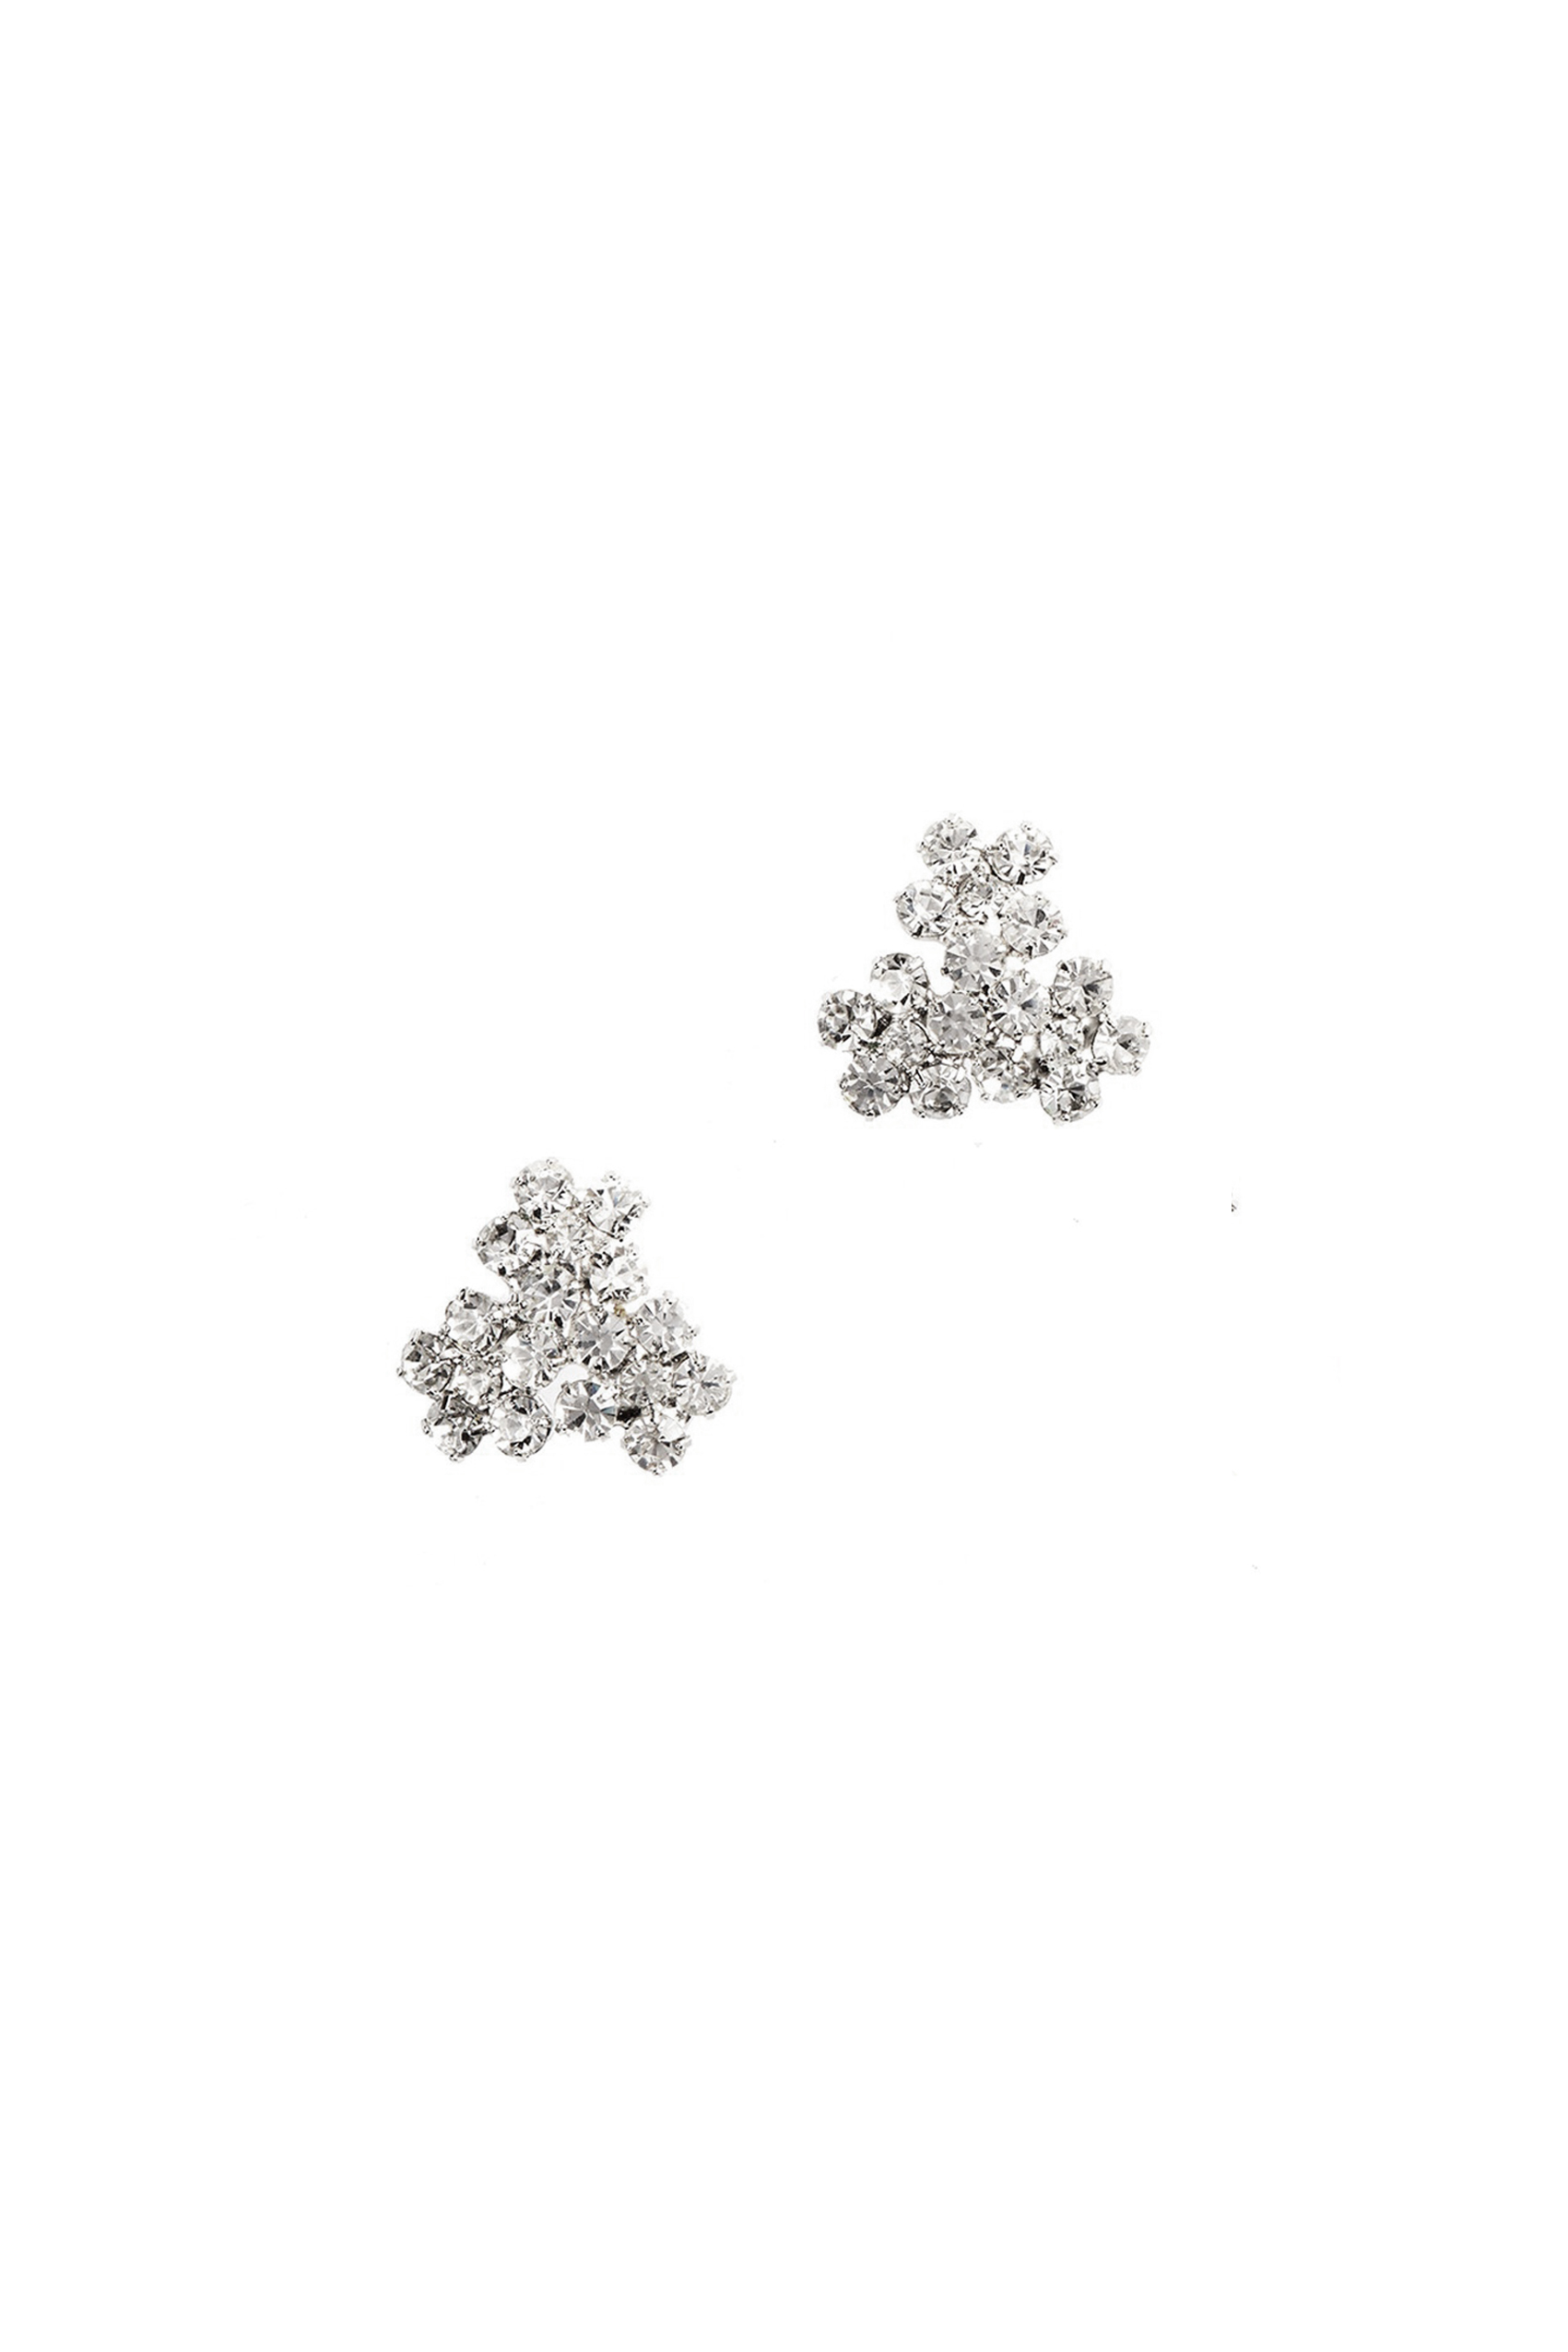 [SELL][Violet Stud Earrings Crystal]by JENNIFER BEHR